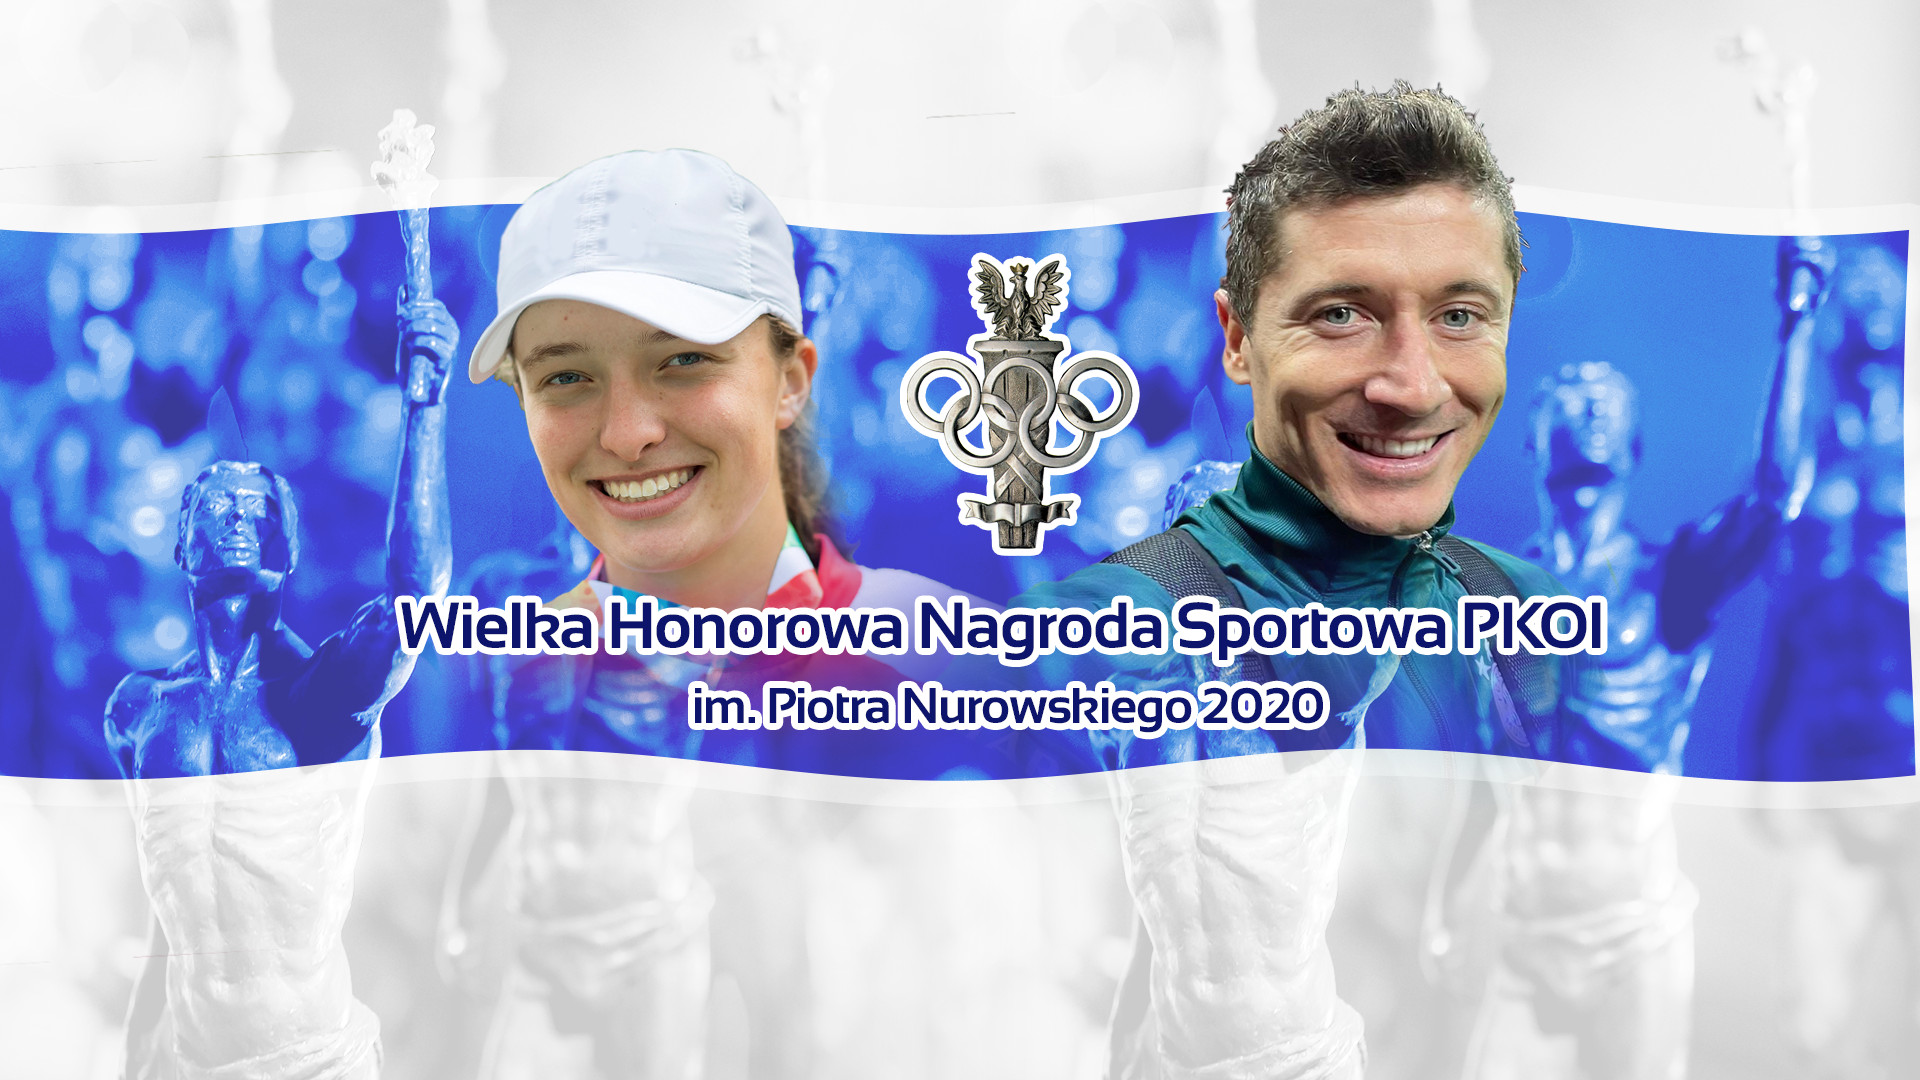 Iga Świątek and Robert Lewandowski are the Athletes of the Year 2020!